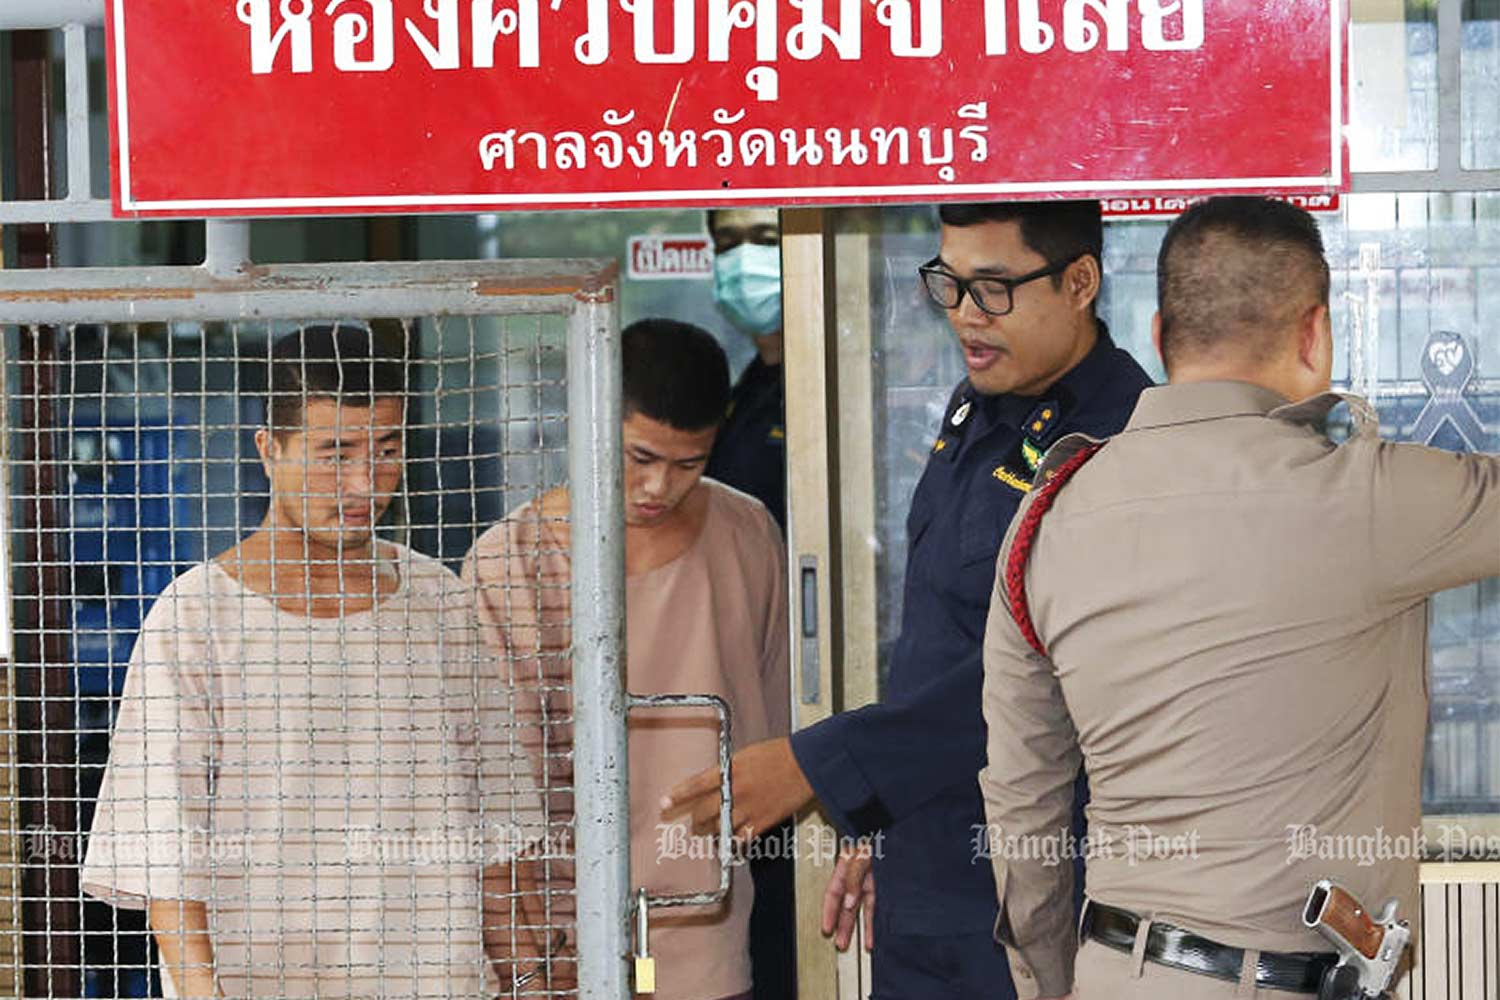 Zaw Lin (left) and Win Zaw Htun arrive at the Provincial Court in Nonthaburi province to hear the Supreme Court's decision on Thursday. (Photo by Pattarapong Chatpattarasill)